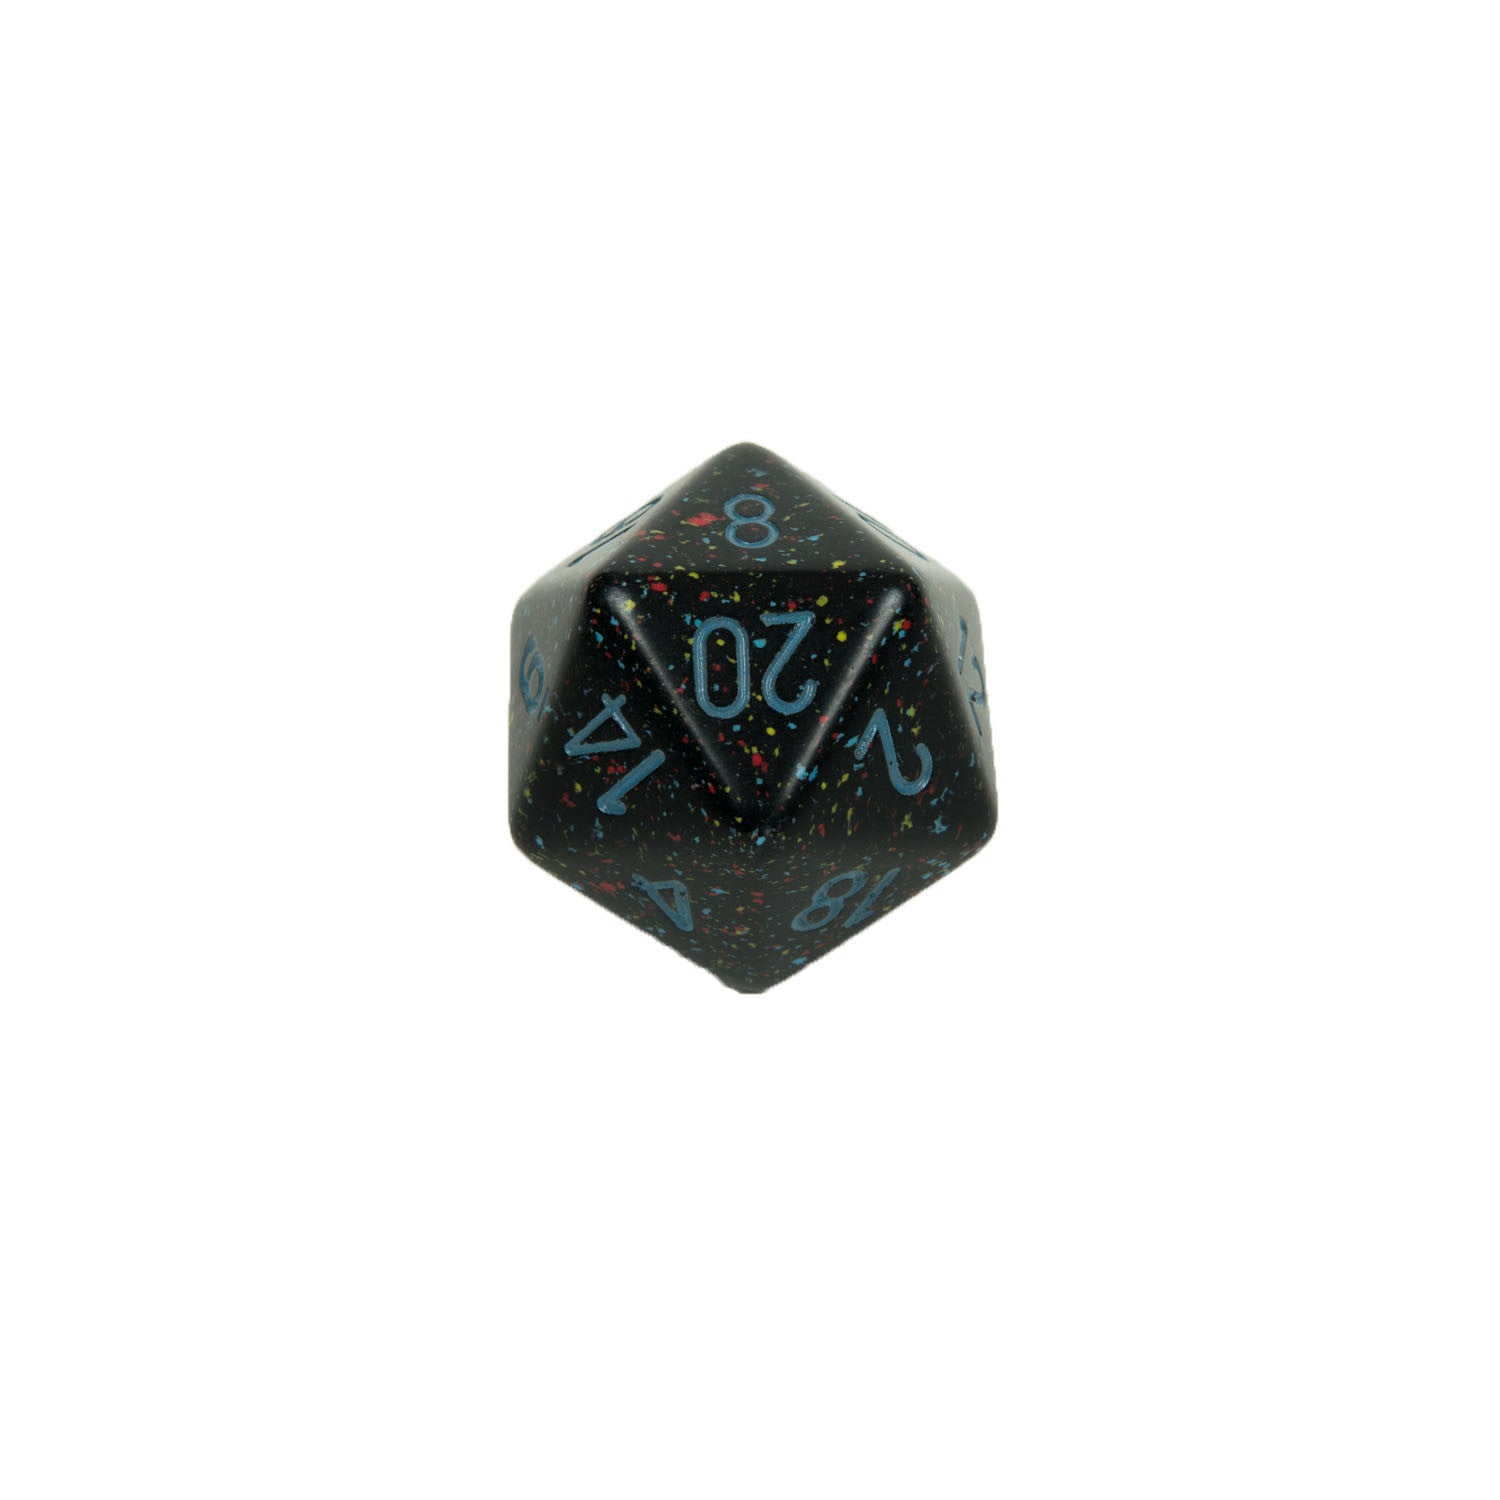 Chessex CHXXS2001 Blue Stars™ Speckled 34mm d20 single